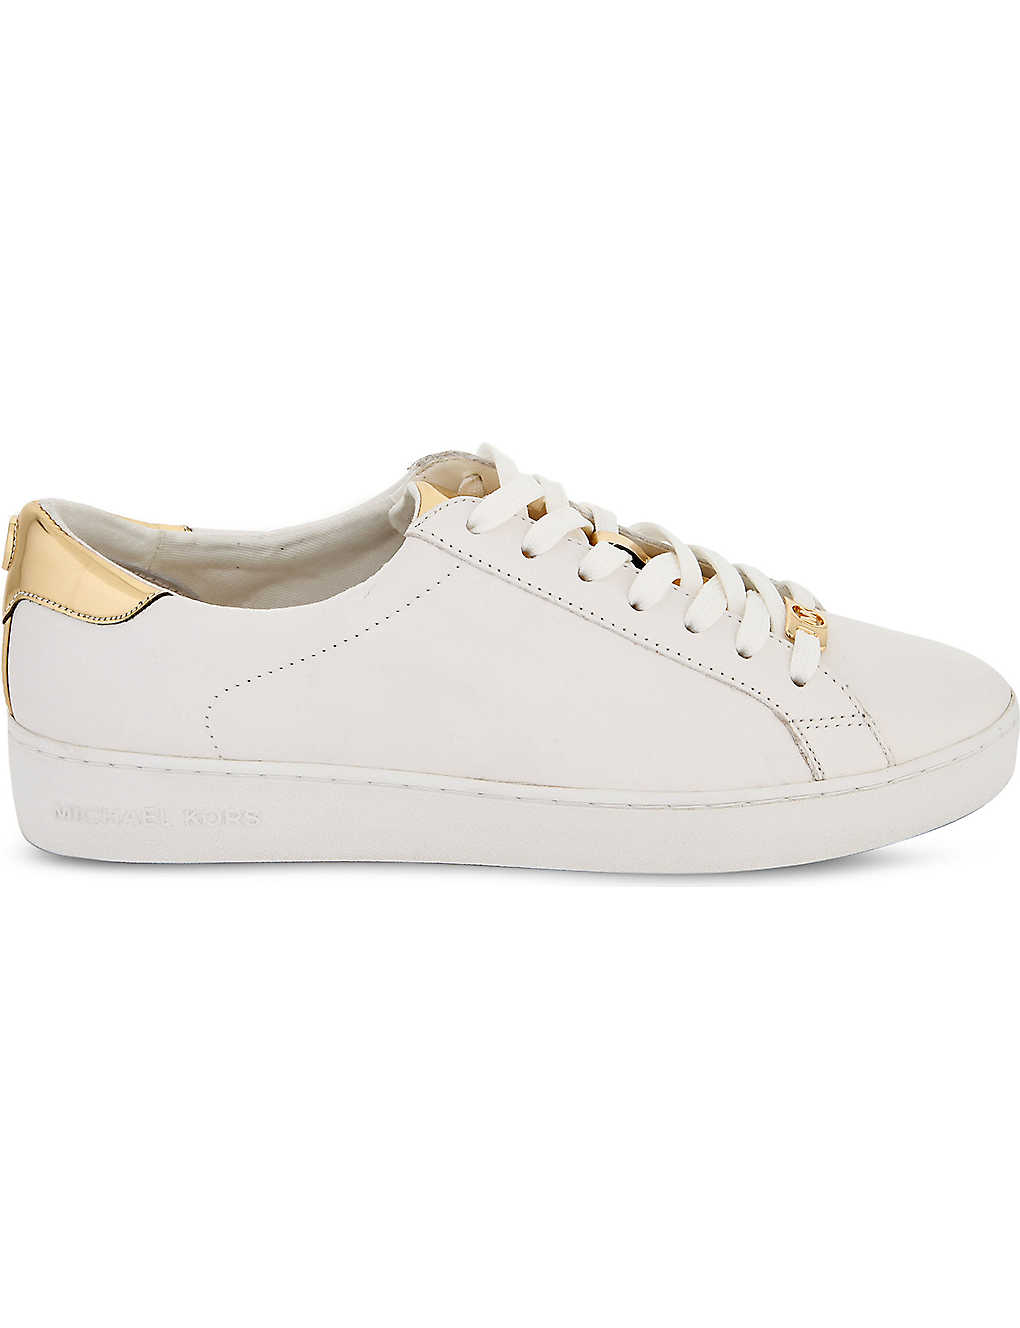 3e6128515a5 MICHAEL MICHAEL KORS - Irving leather trainers